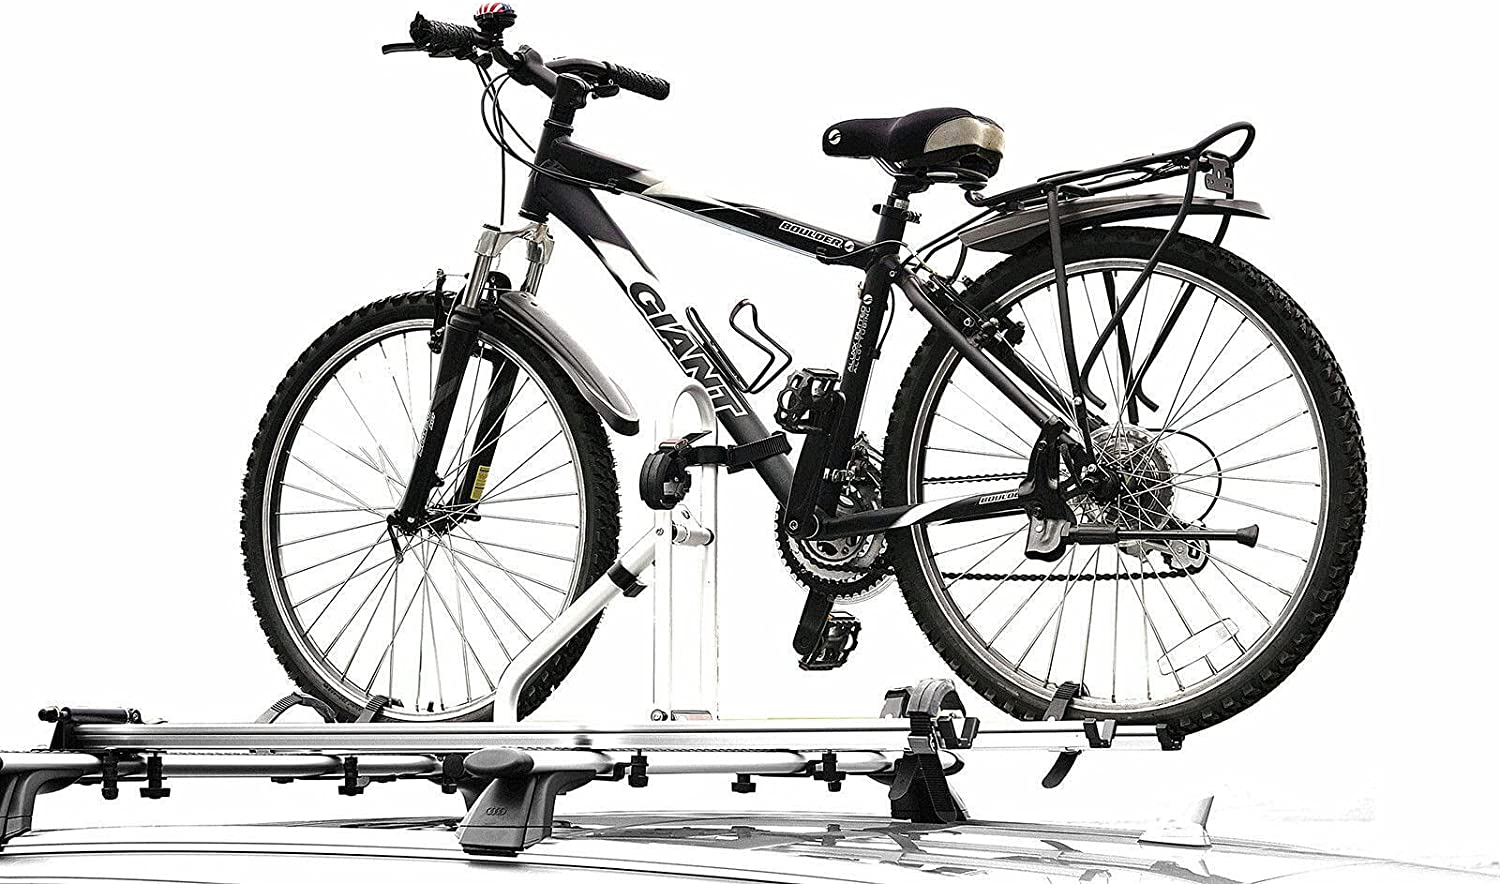 CyclingDeal Alloy Car Roof Bike Bicycle Carrier Rack for 2 Bikes